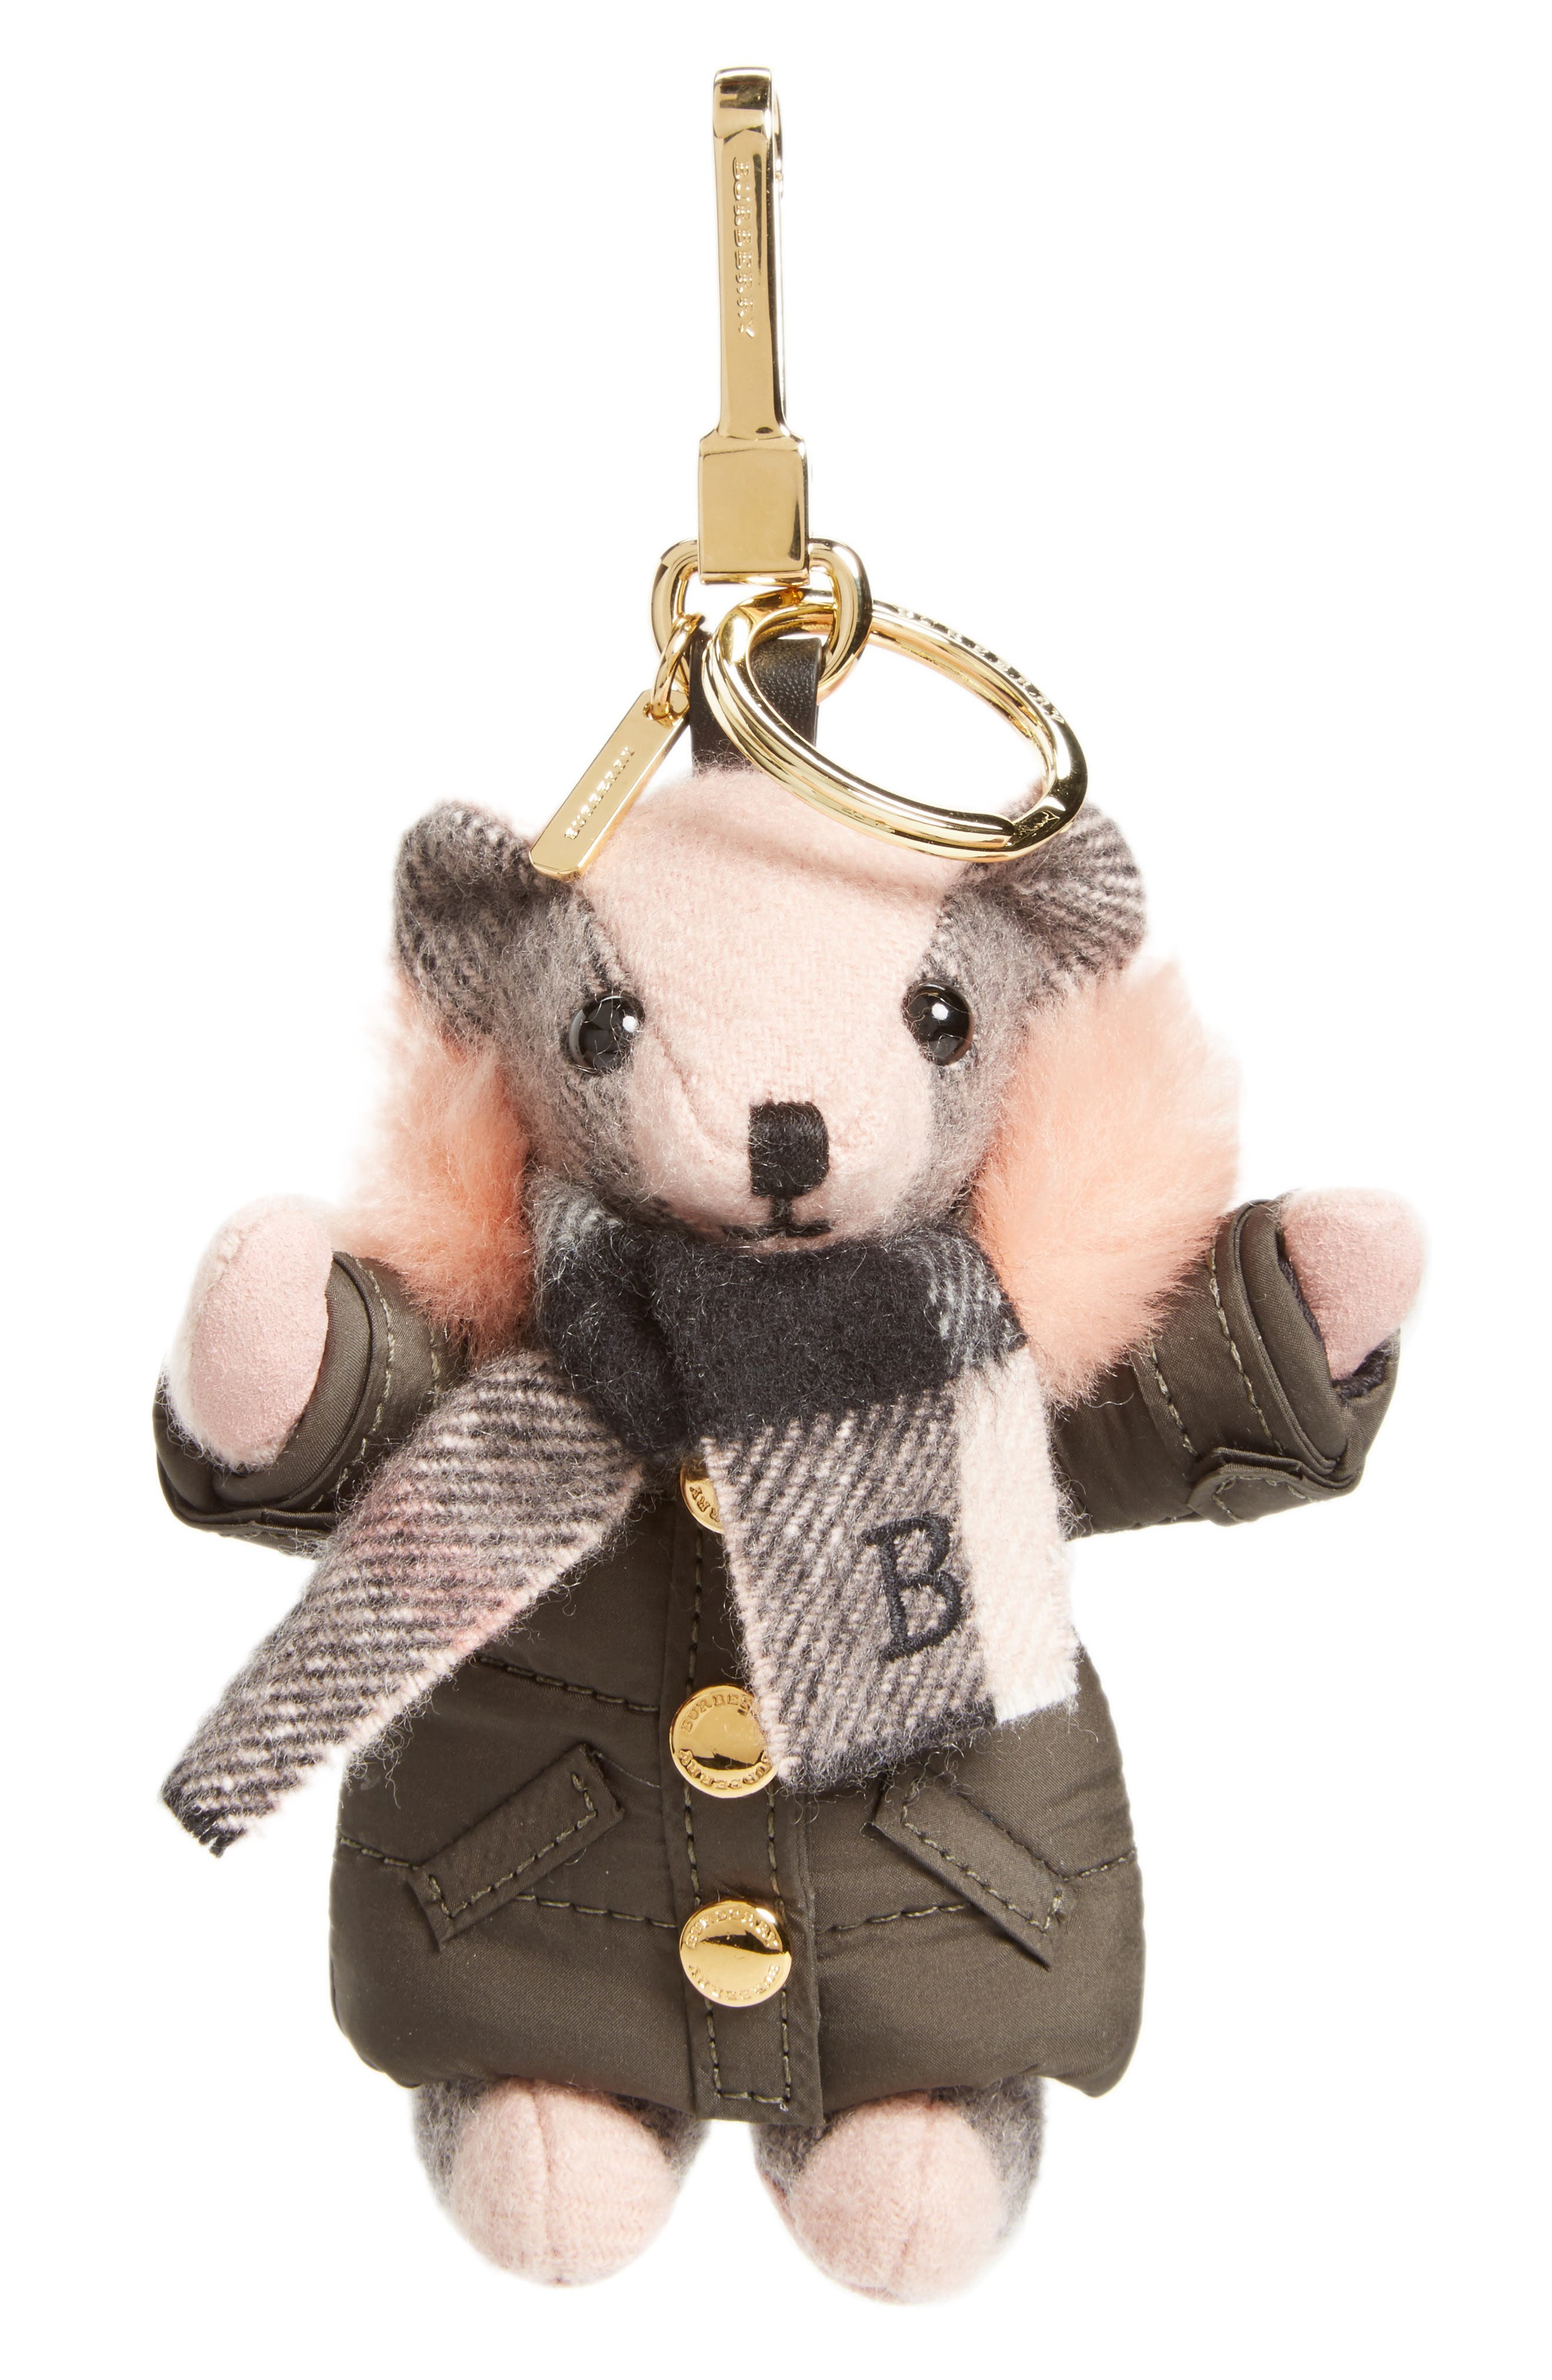 Main Image - Burberry Thomas Bear Bag Charm with Genuine Shearling Trim Puffer Jacket & Scarf